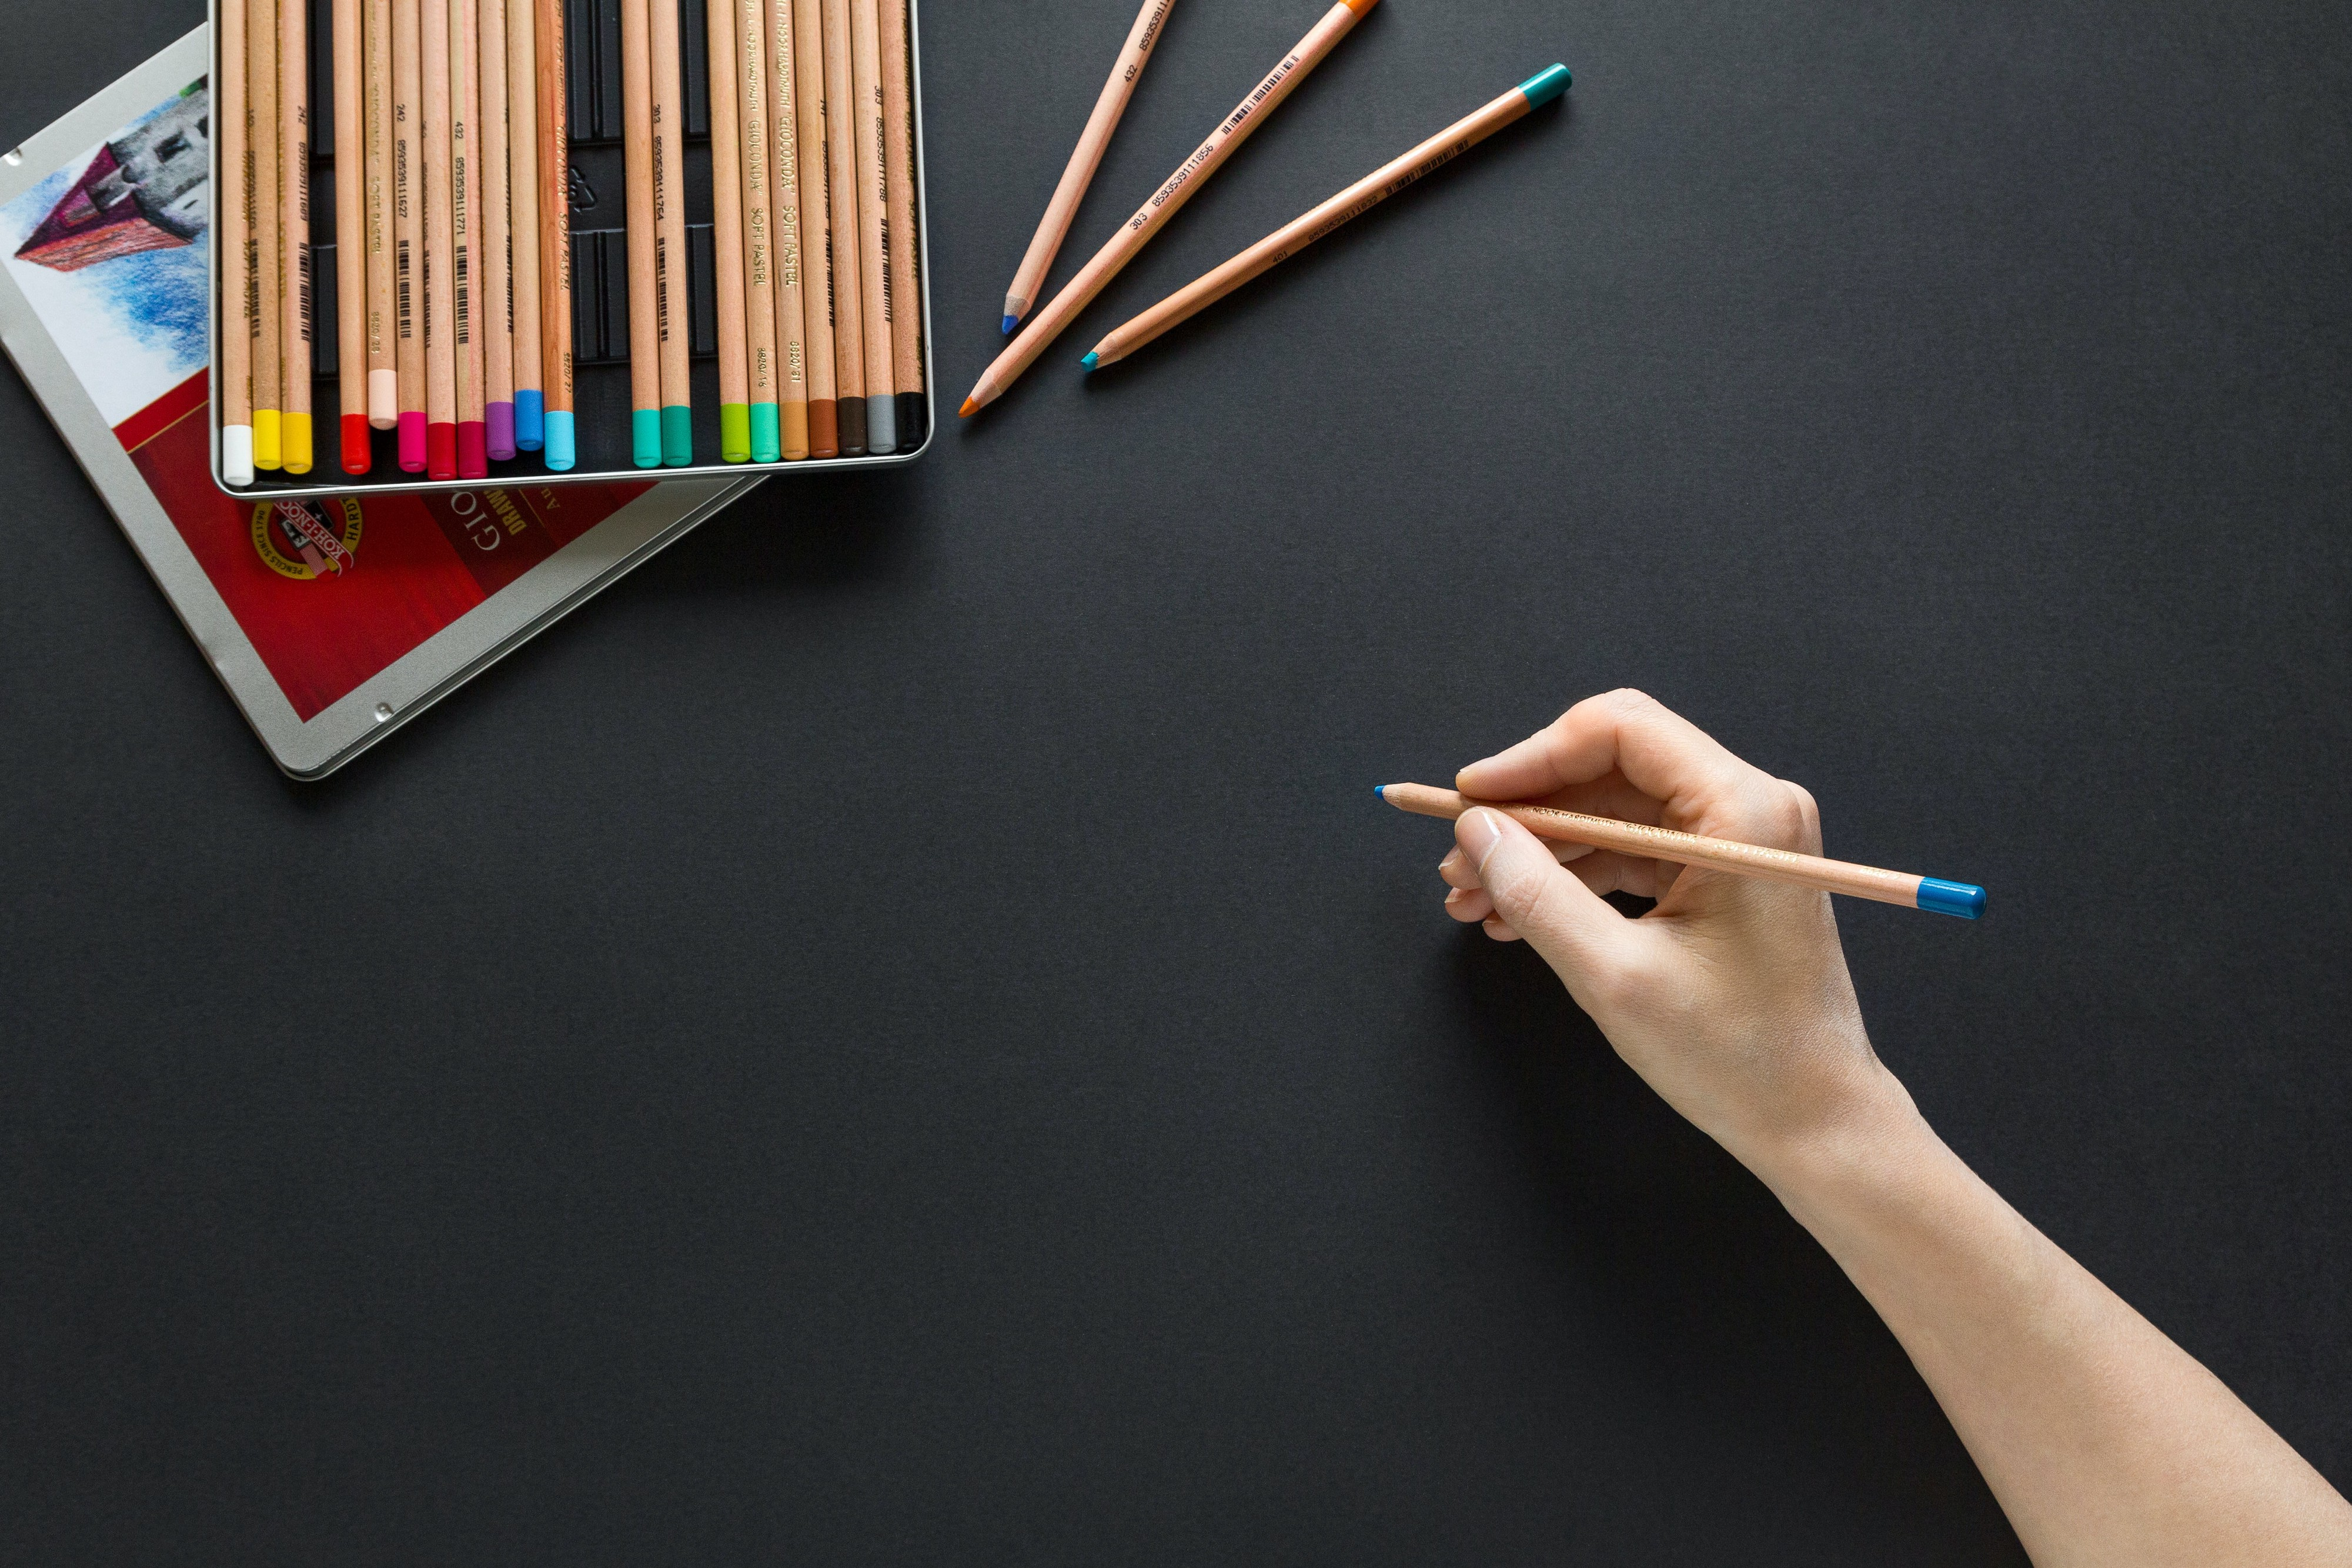 An image of a box of colored pencils on a black background. A hand holds one of the pencils near the middle.